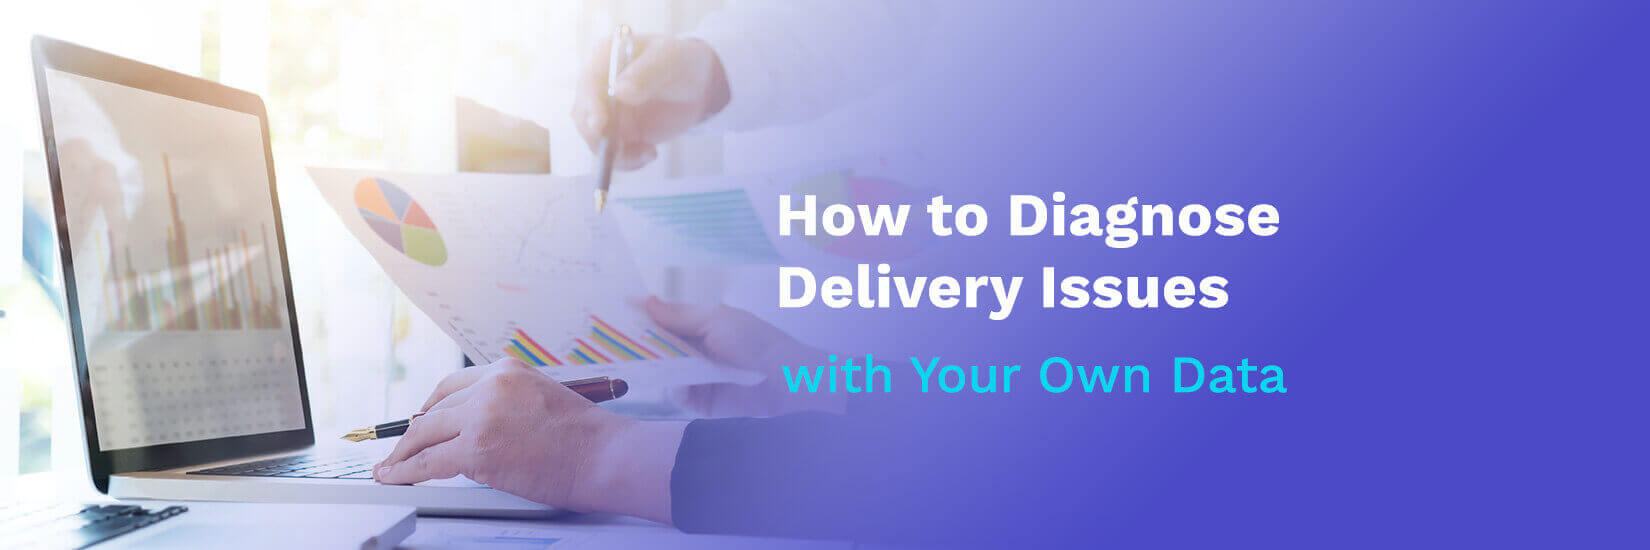 Diagnosing Delivery Issues with Your Own Data